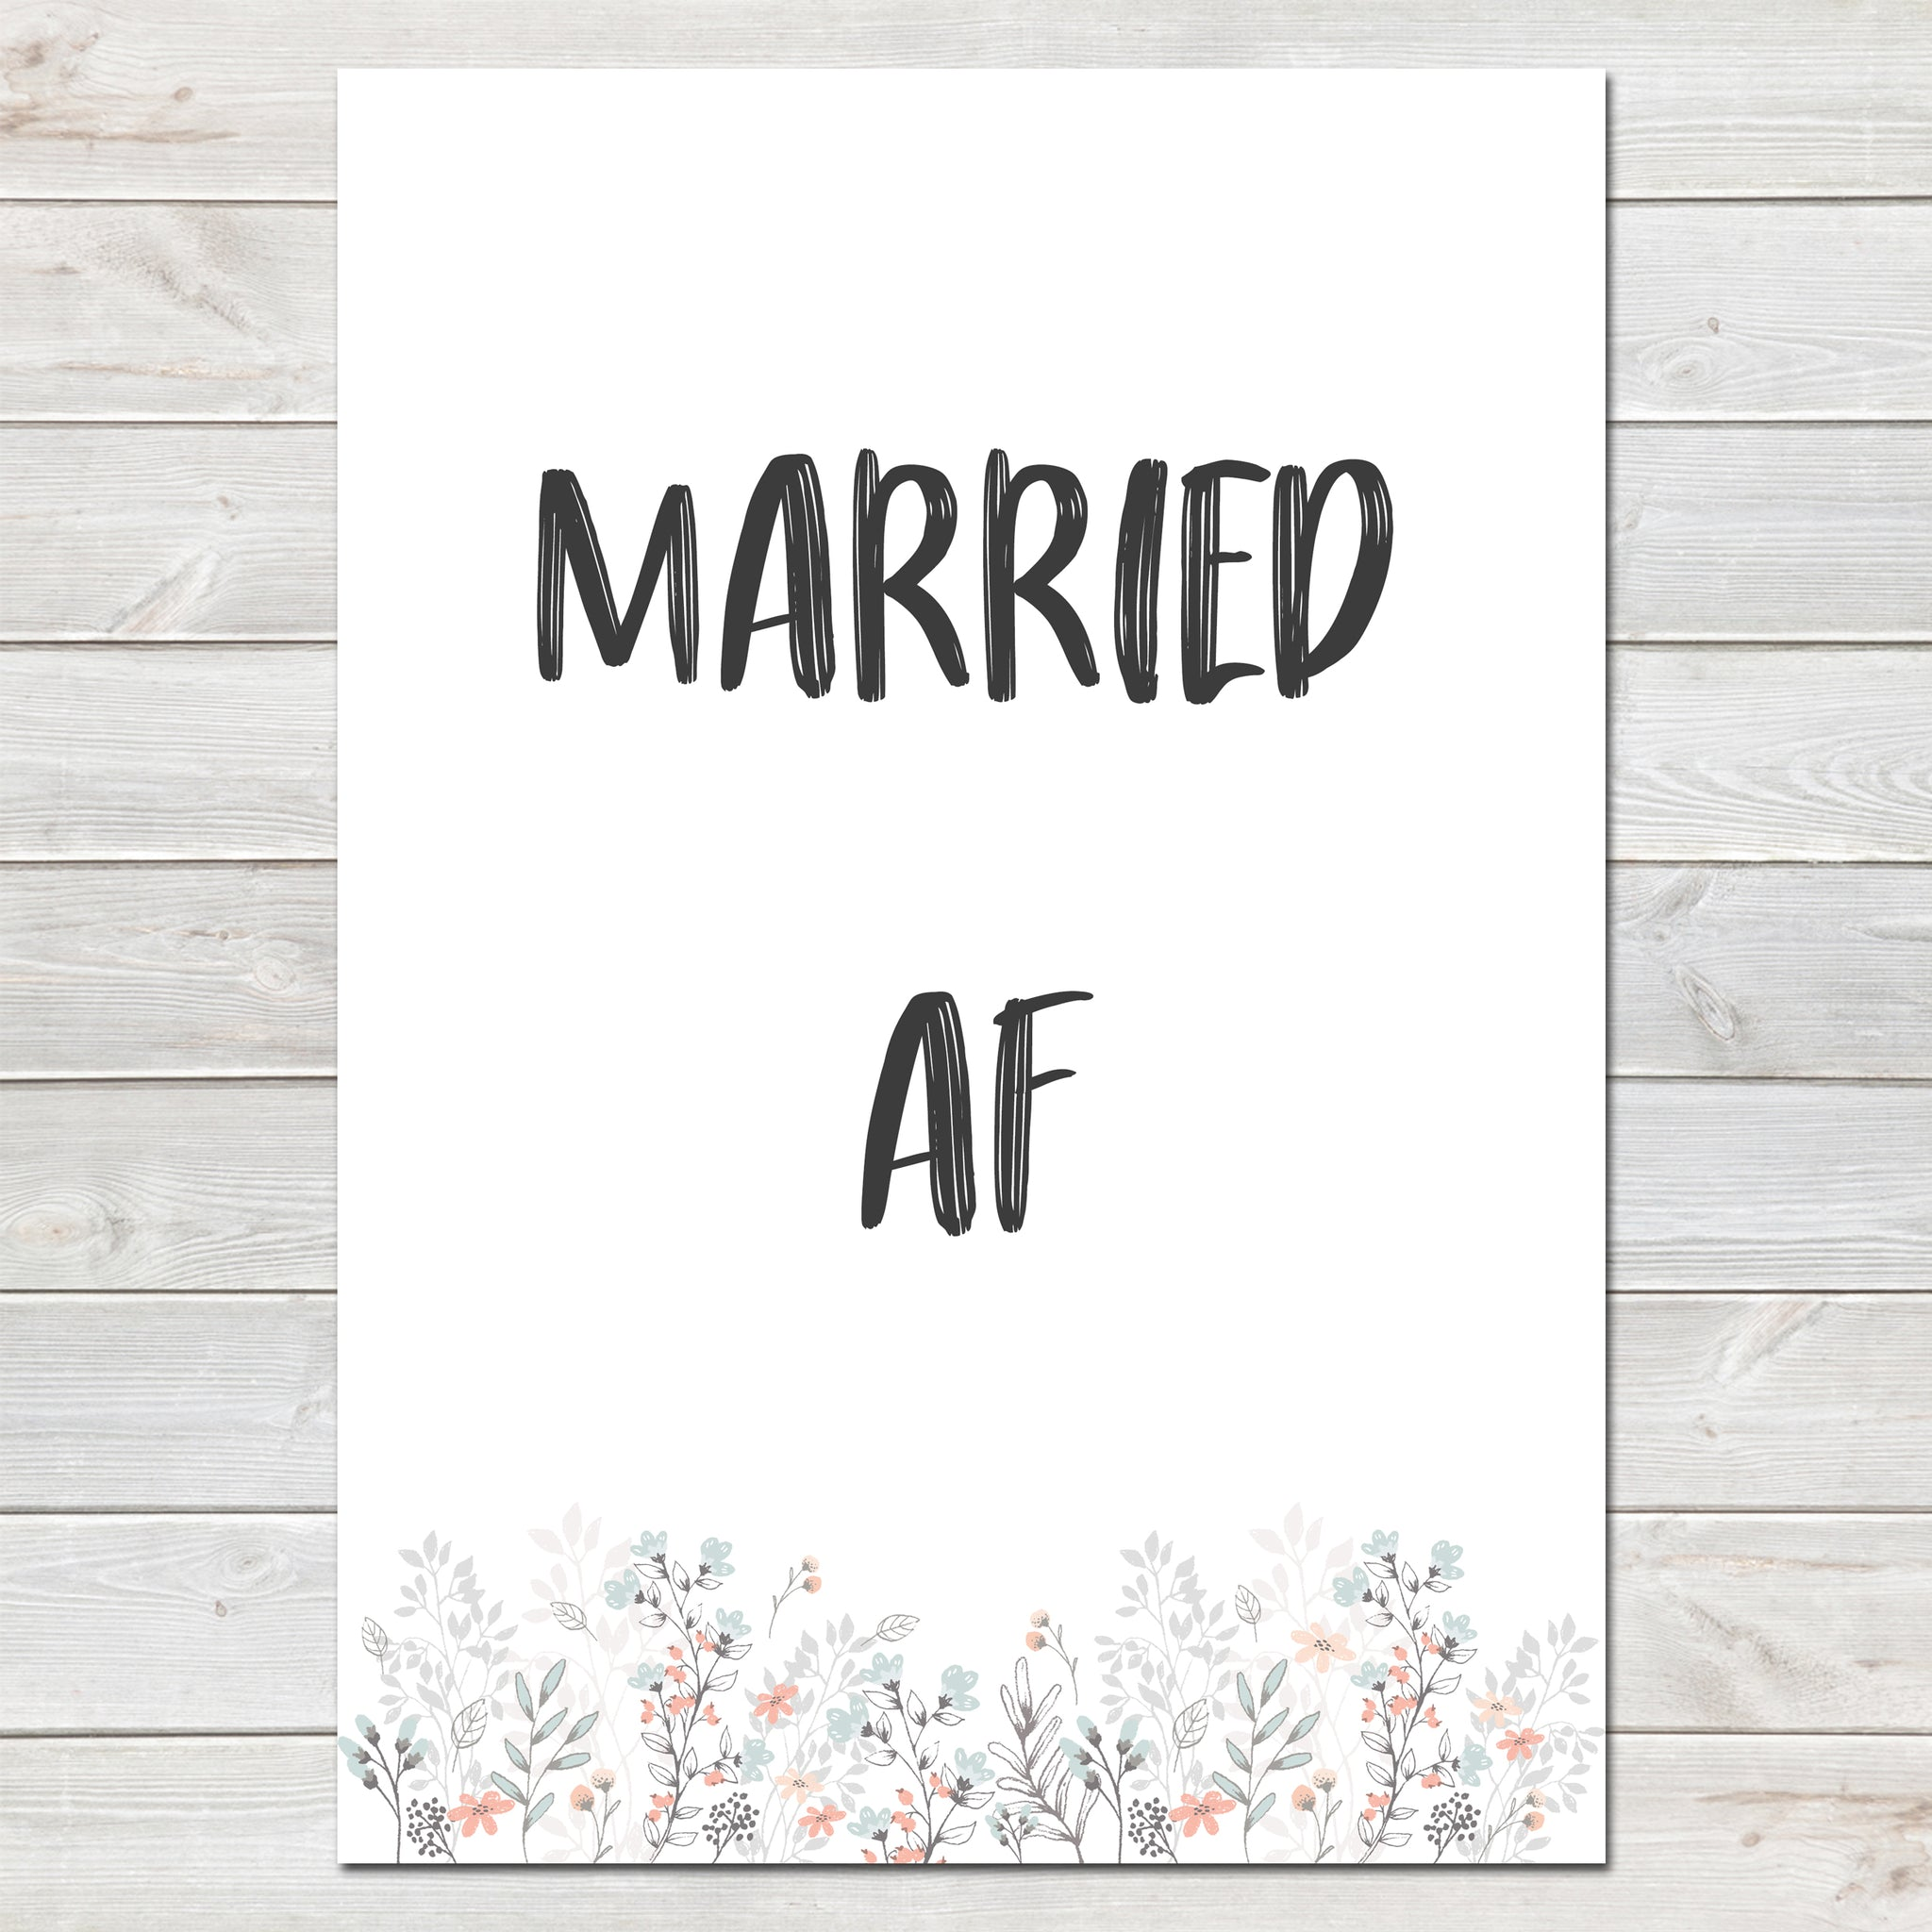 Wedding Party Married AF (As F***) Funny Flowery Pastel Poster / Photo Prop / Sign